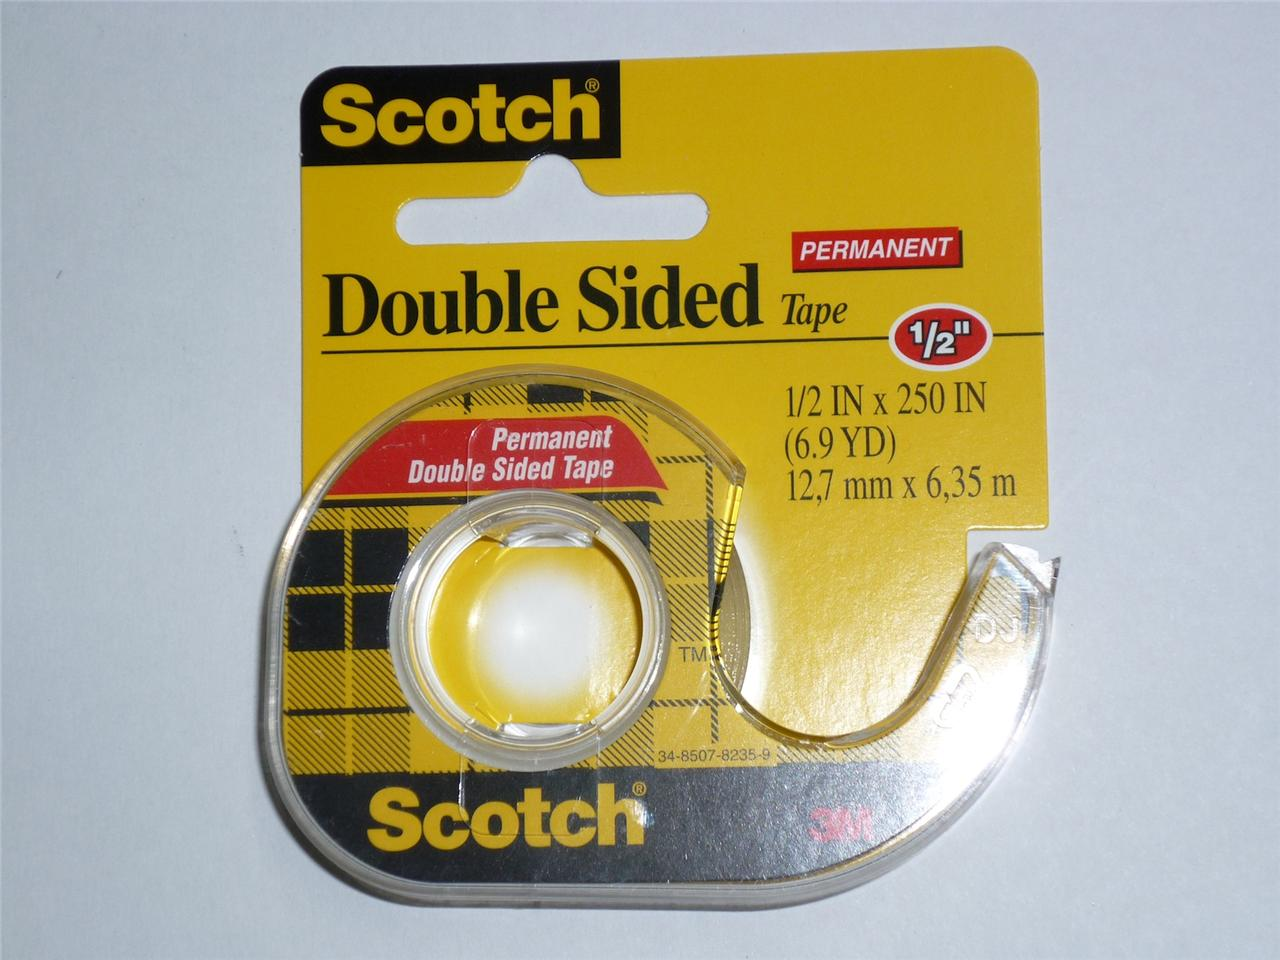 3m scotch double sided tape 136 office tape sticky tape 12. Black Bedroom Furniture Sets. Home Design Ideas